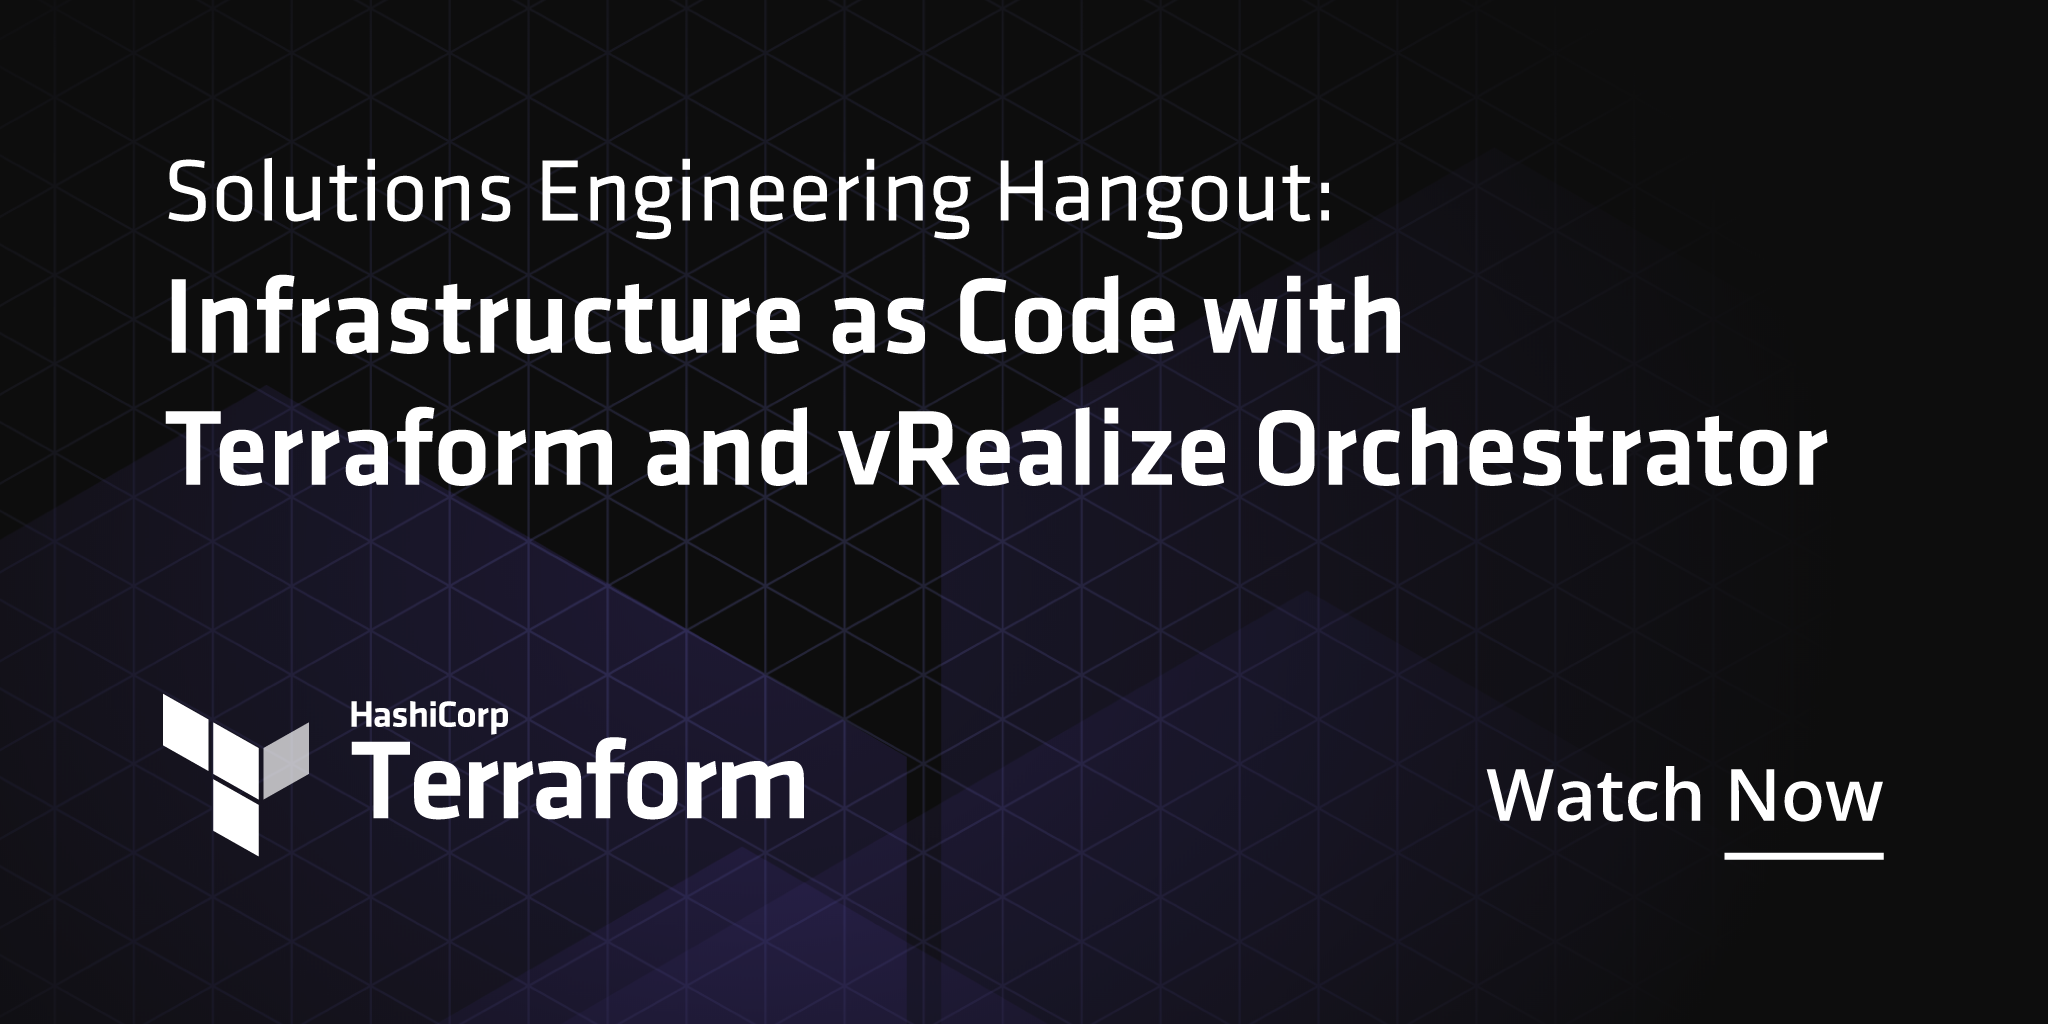 Solutions Engineering Hangout: Infrastructure as Code with